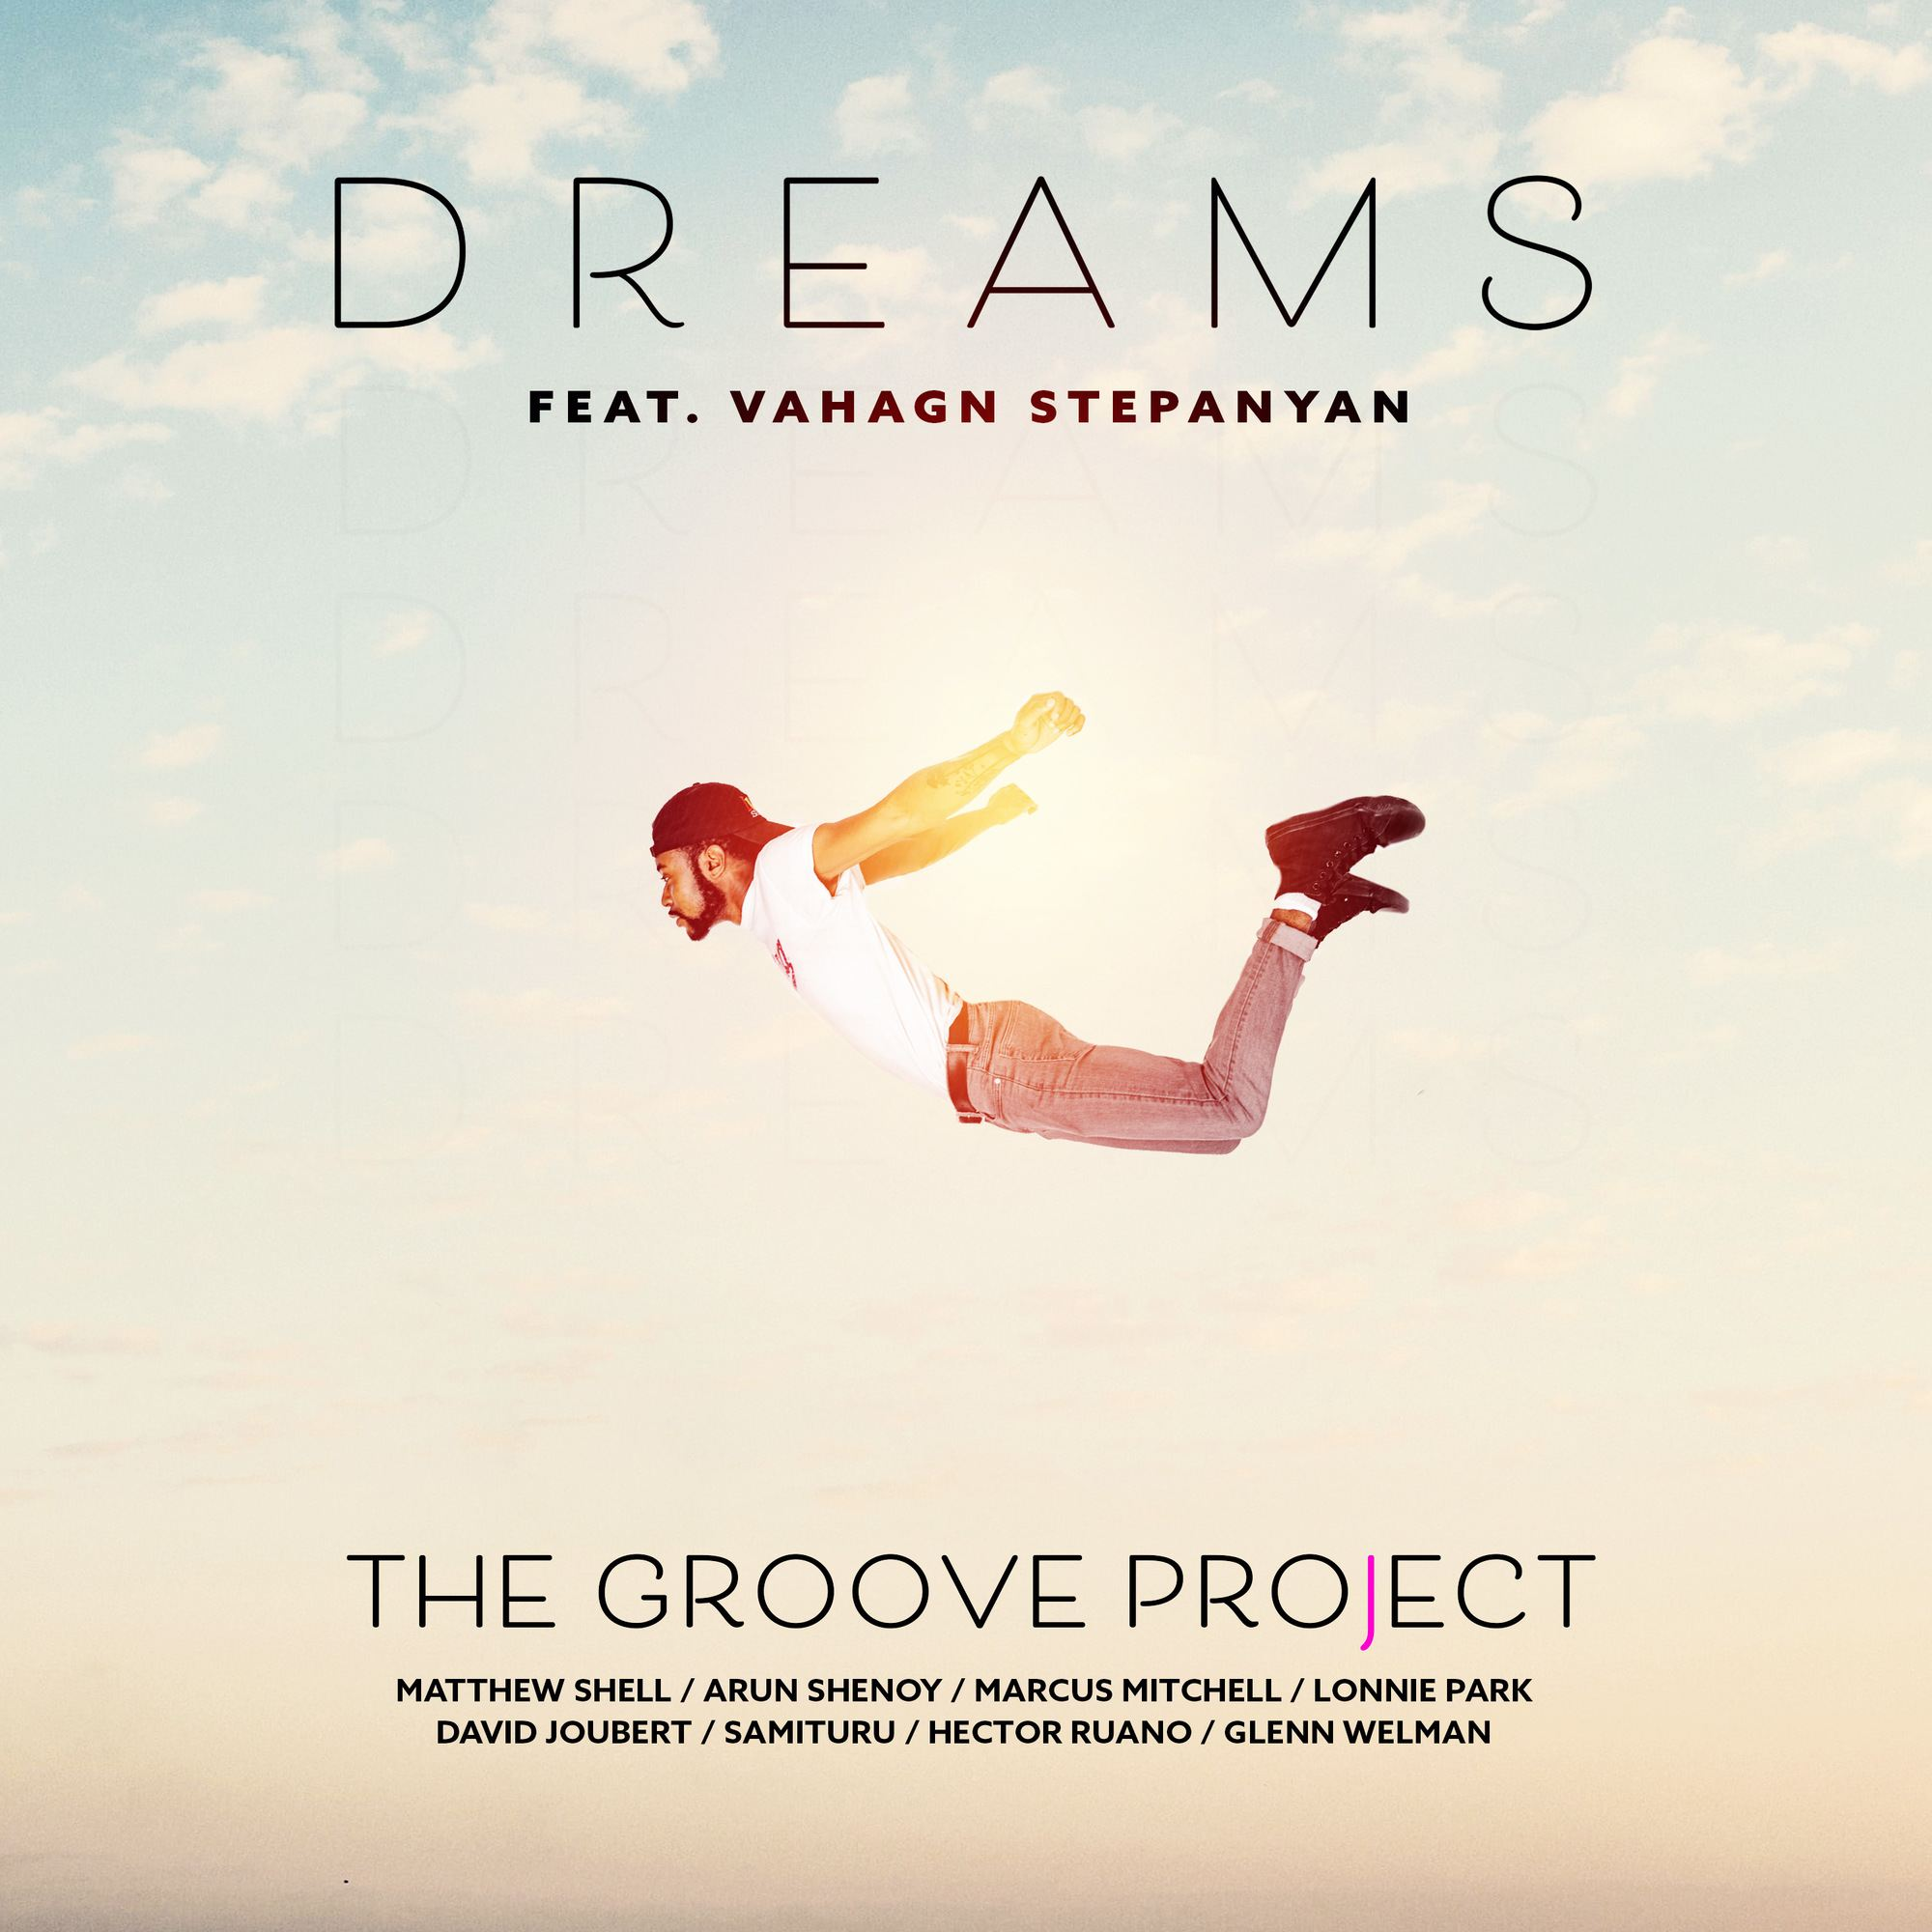 12. Dreams (feat. Vahagn Stepanyan)